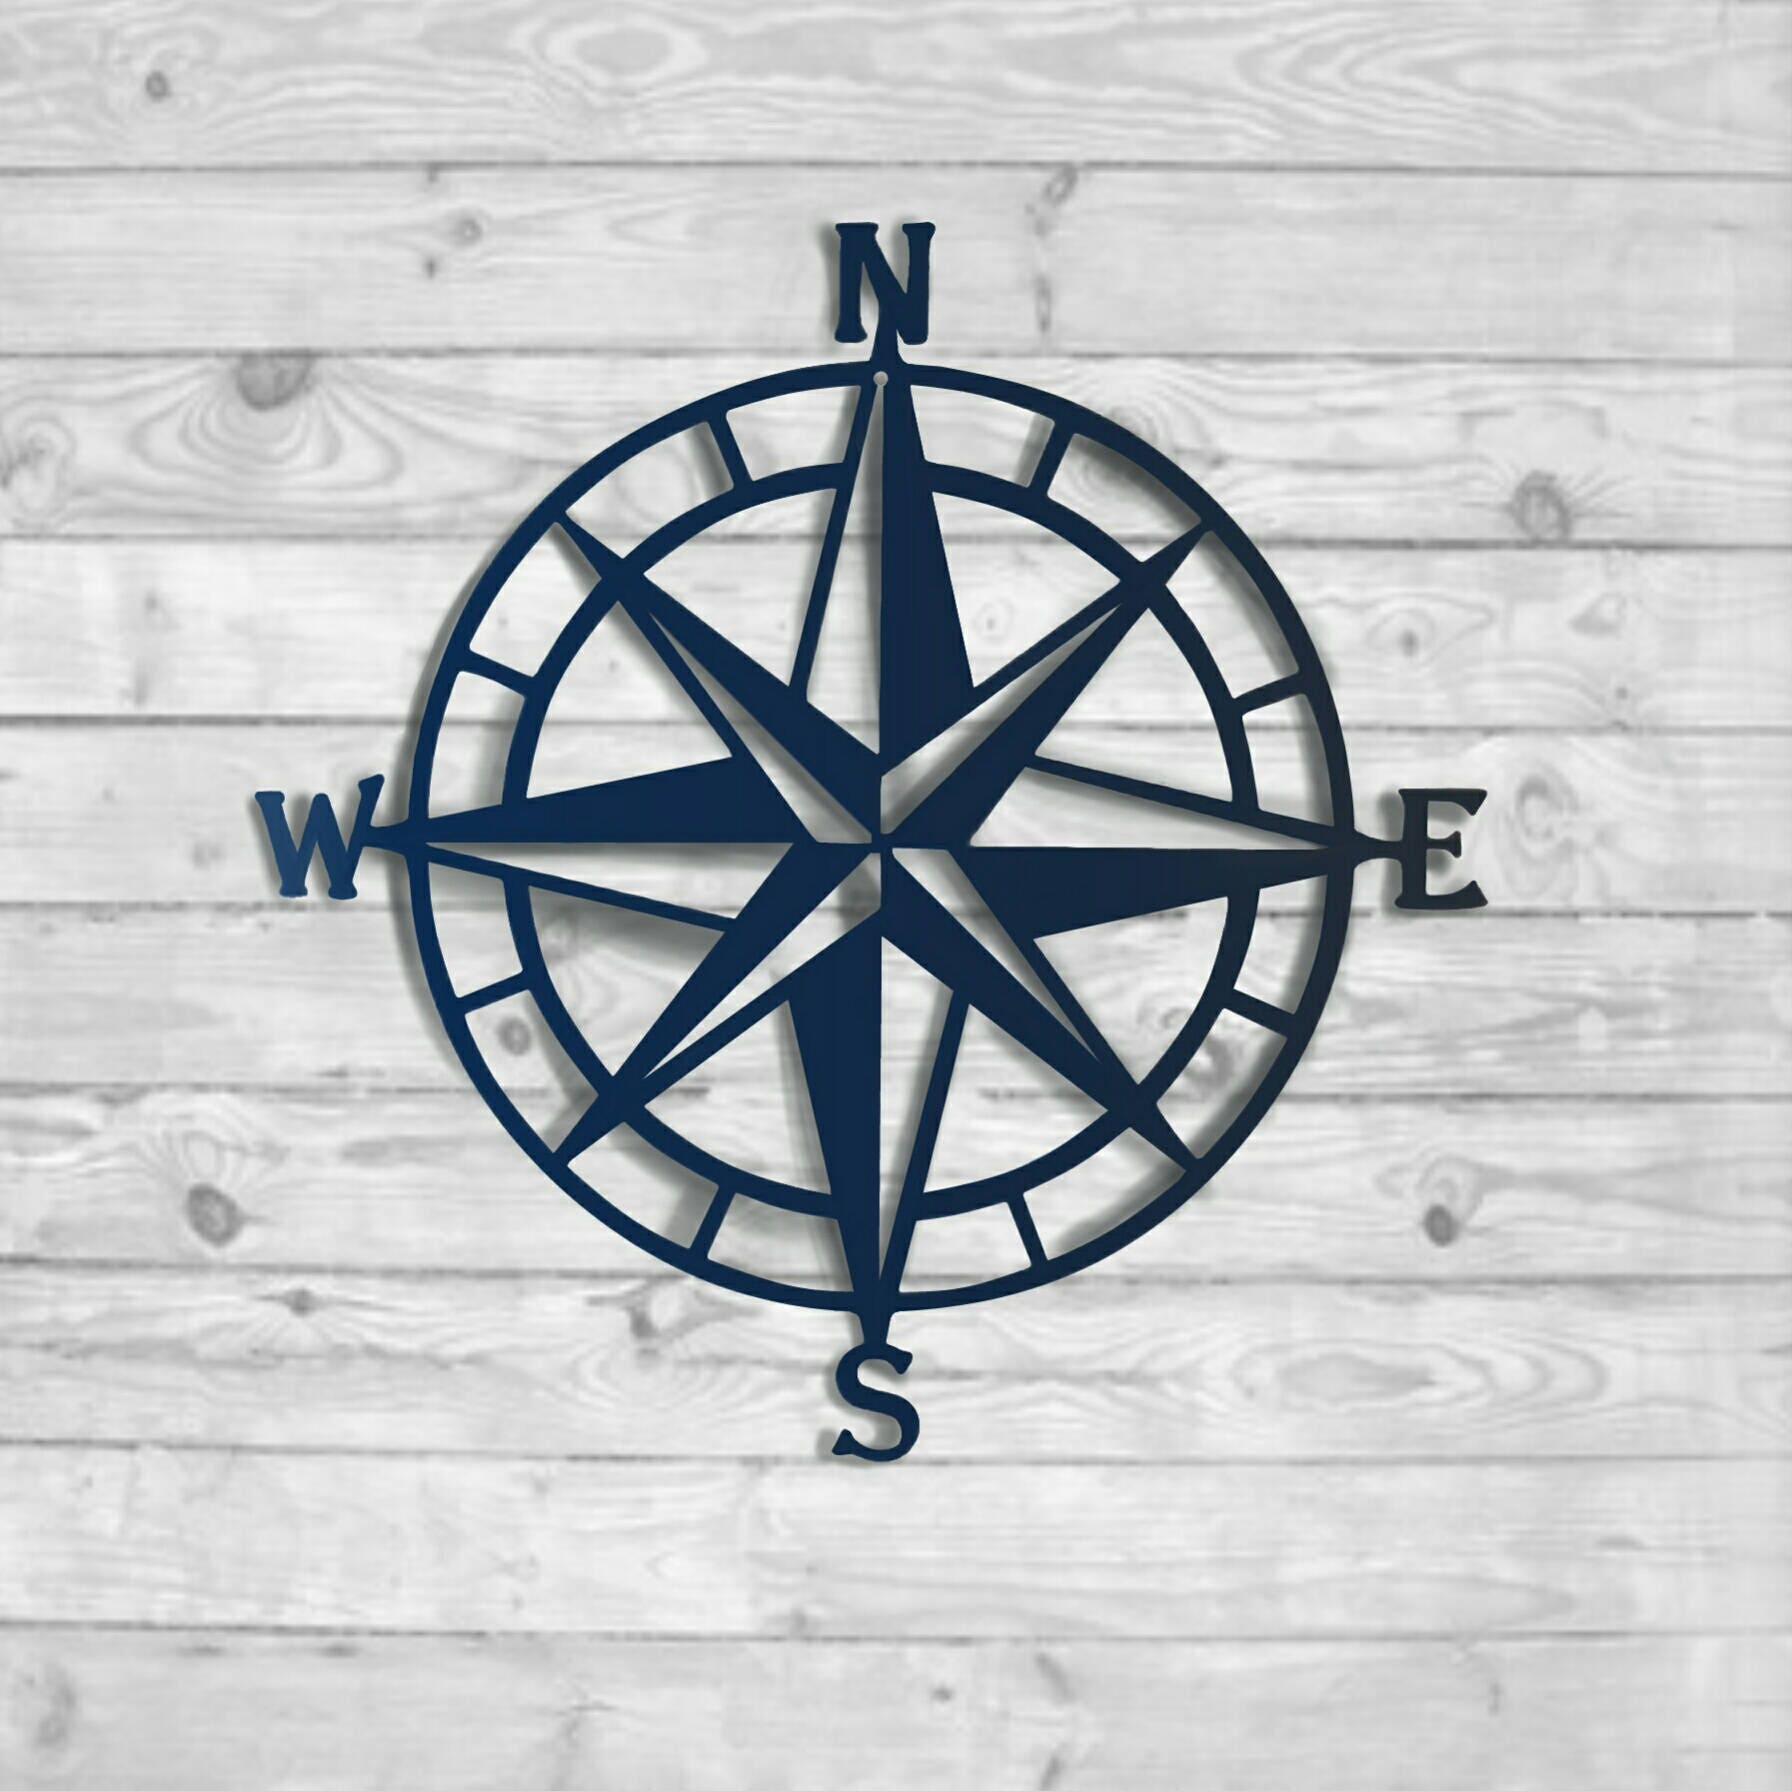 Textured Navy: Nautical Compass   Nautical Wall Art   Metal Wall Art    Nautical Rose Outdoor Metal Art  Wall Decor, HSACOMTN